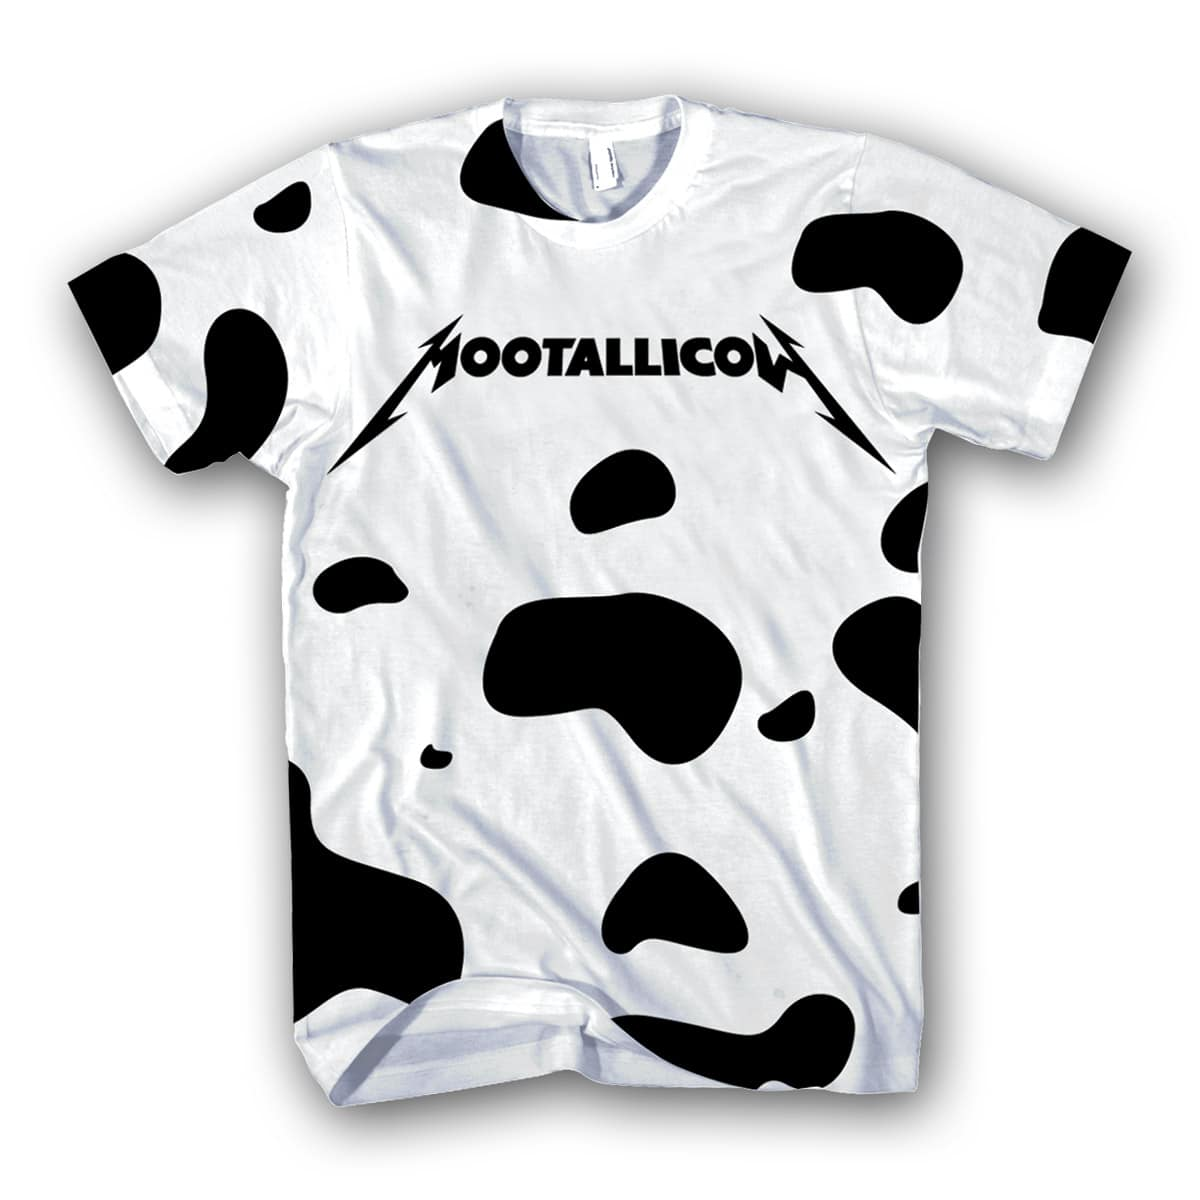 Mootalicow by mainial on Threadless